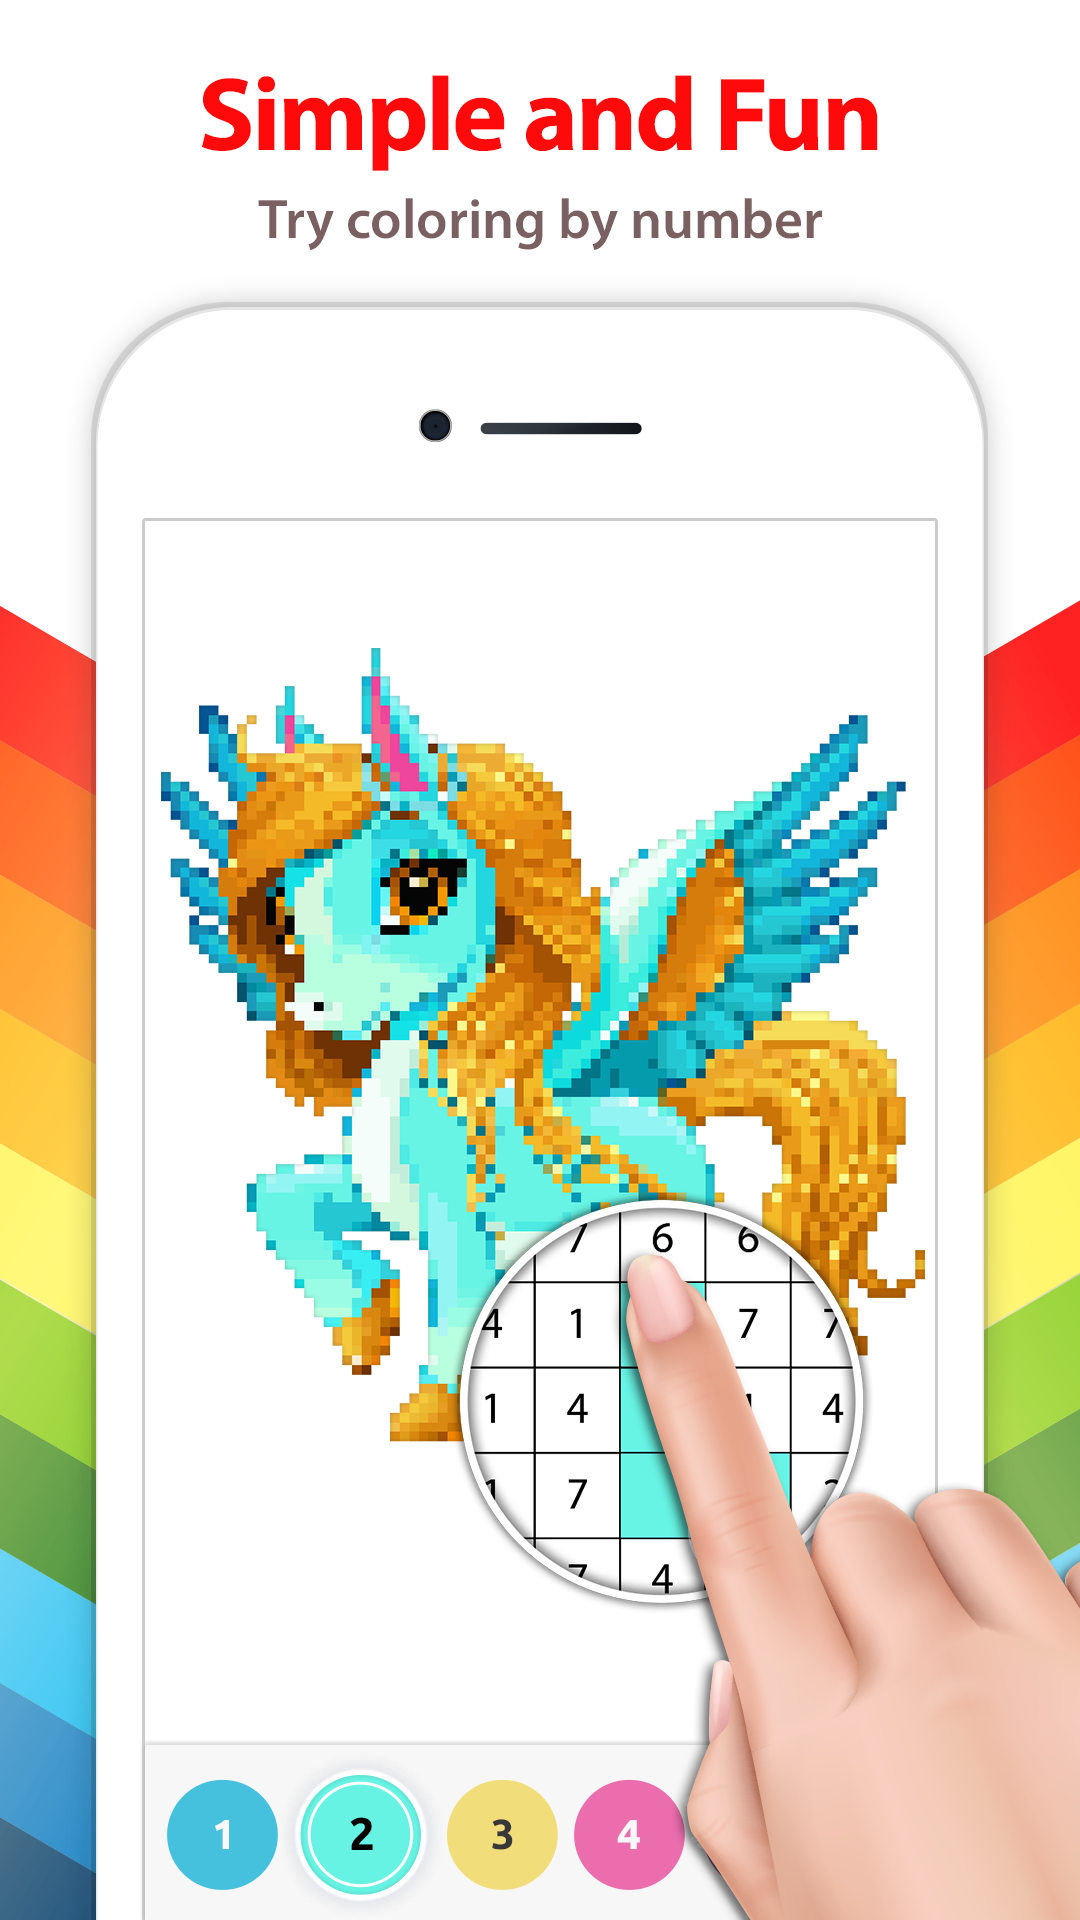 Unicorn Color By Number Pixel Art App Takes You To A Whole New World Of Paint By Numbers Apps Full Of U Coloring Book App Coloring Books Love Coloring Pages